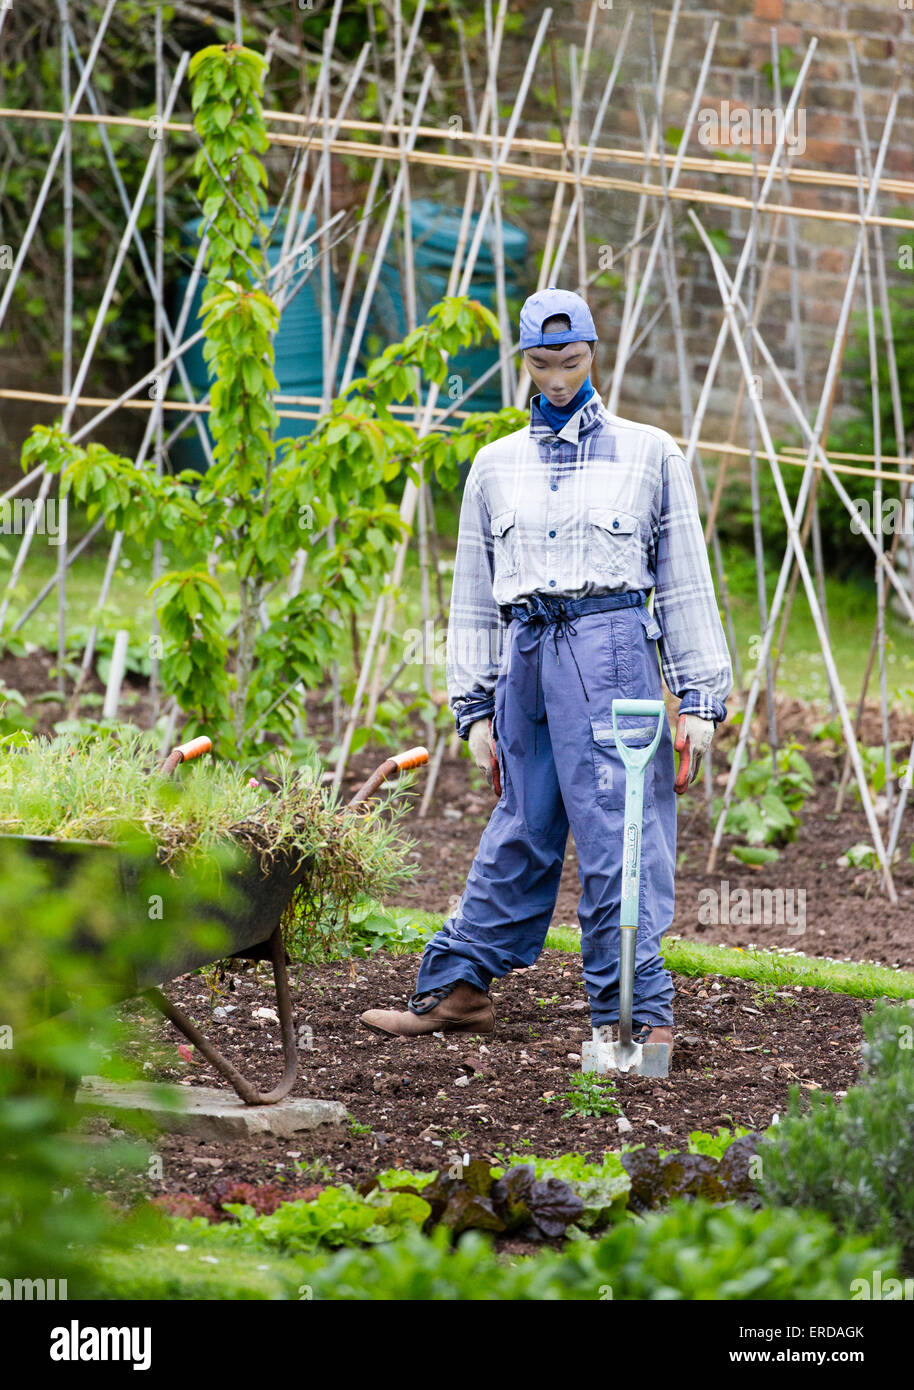 Stylishly dressed scarecrow in an English kitchen garden with baseball cap and spade - Stock Image